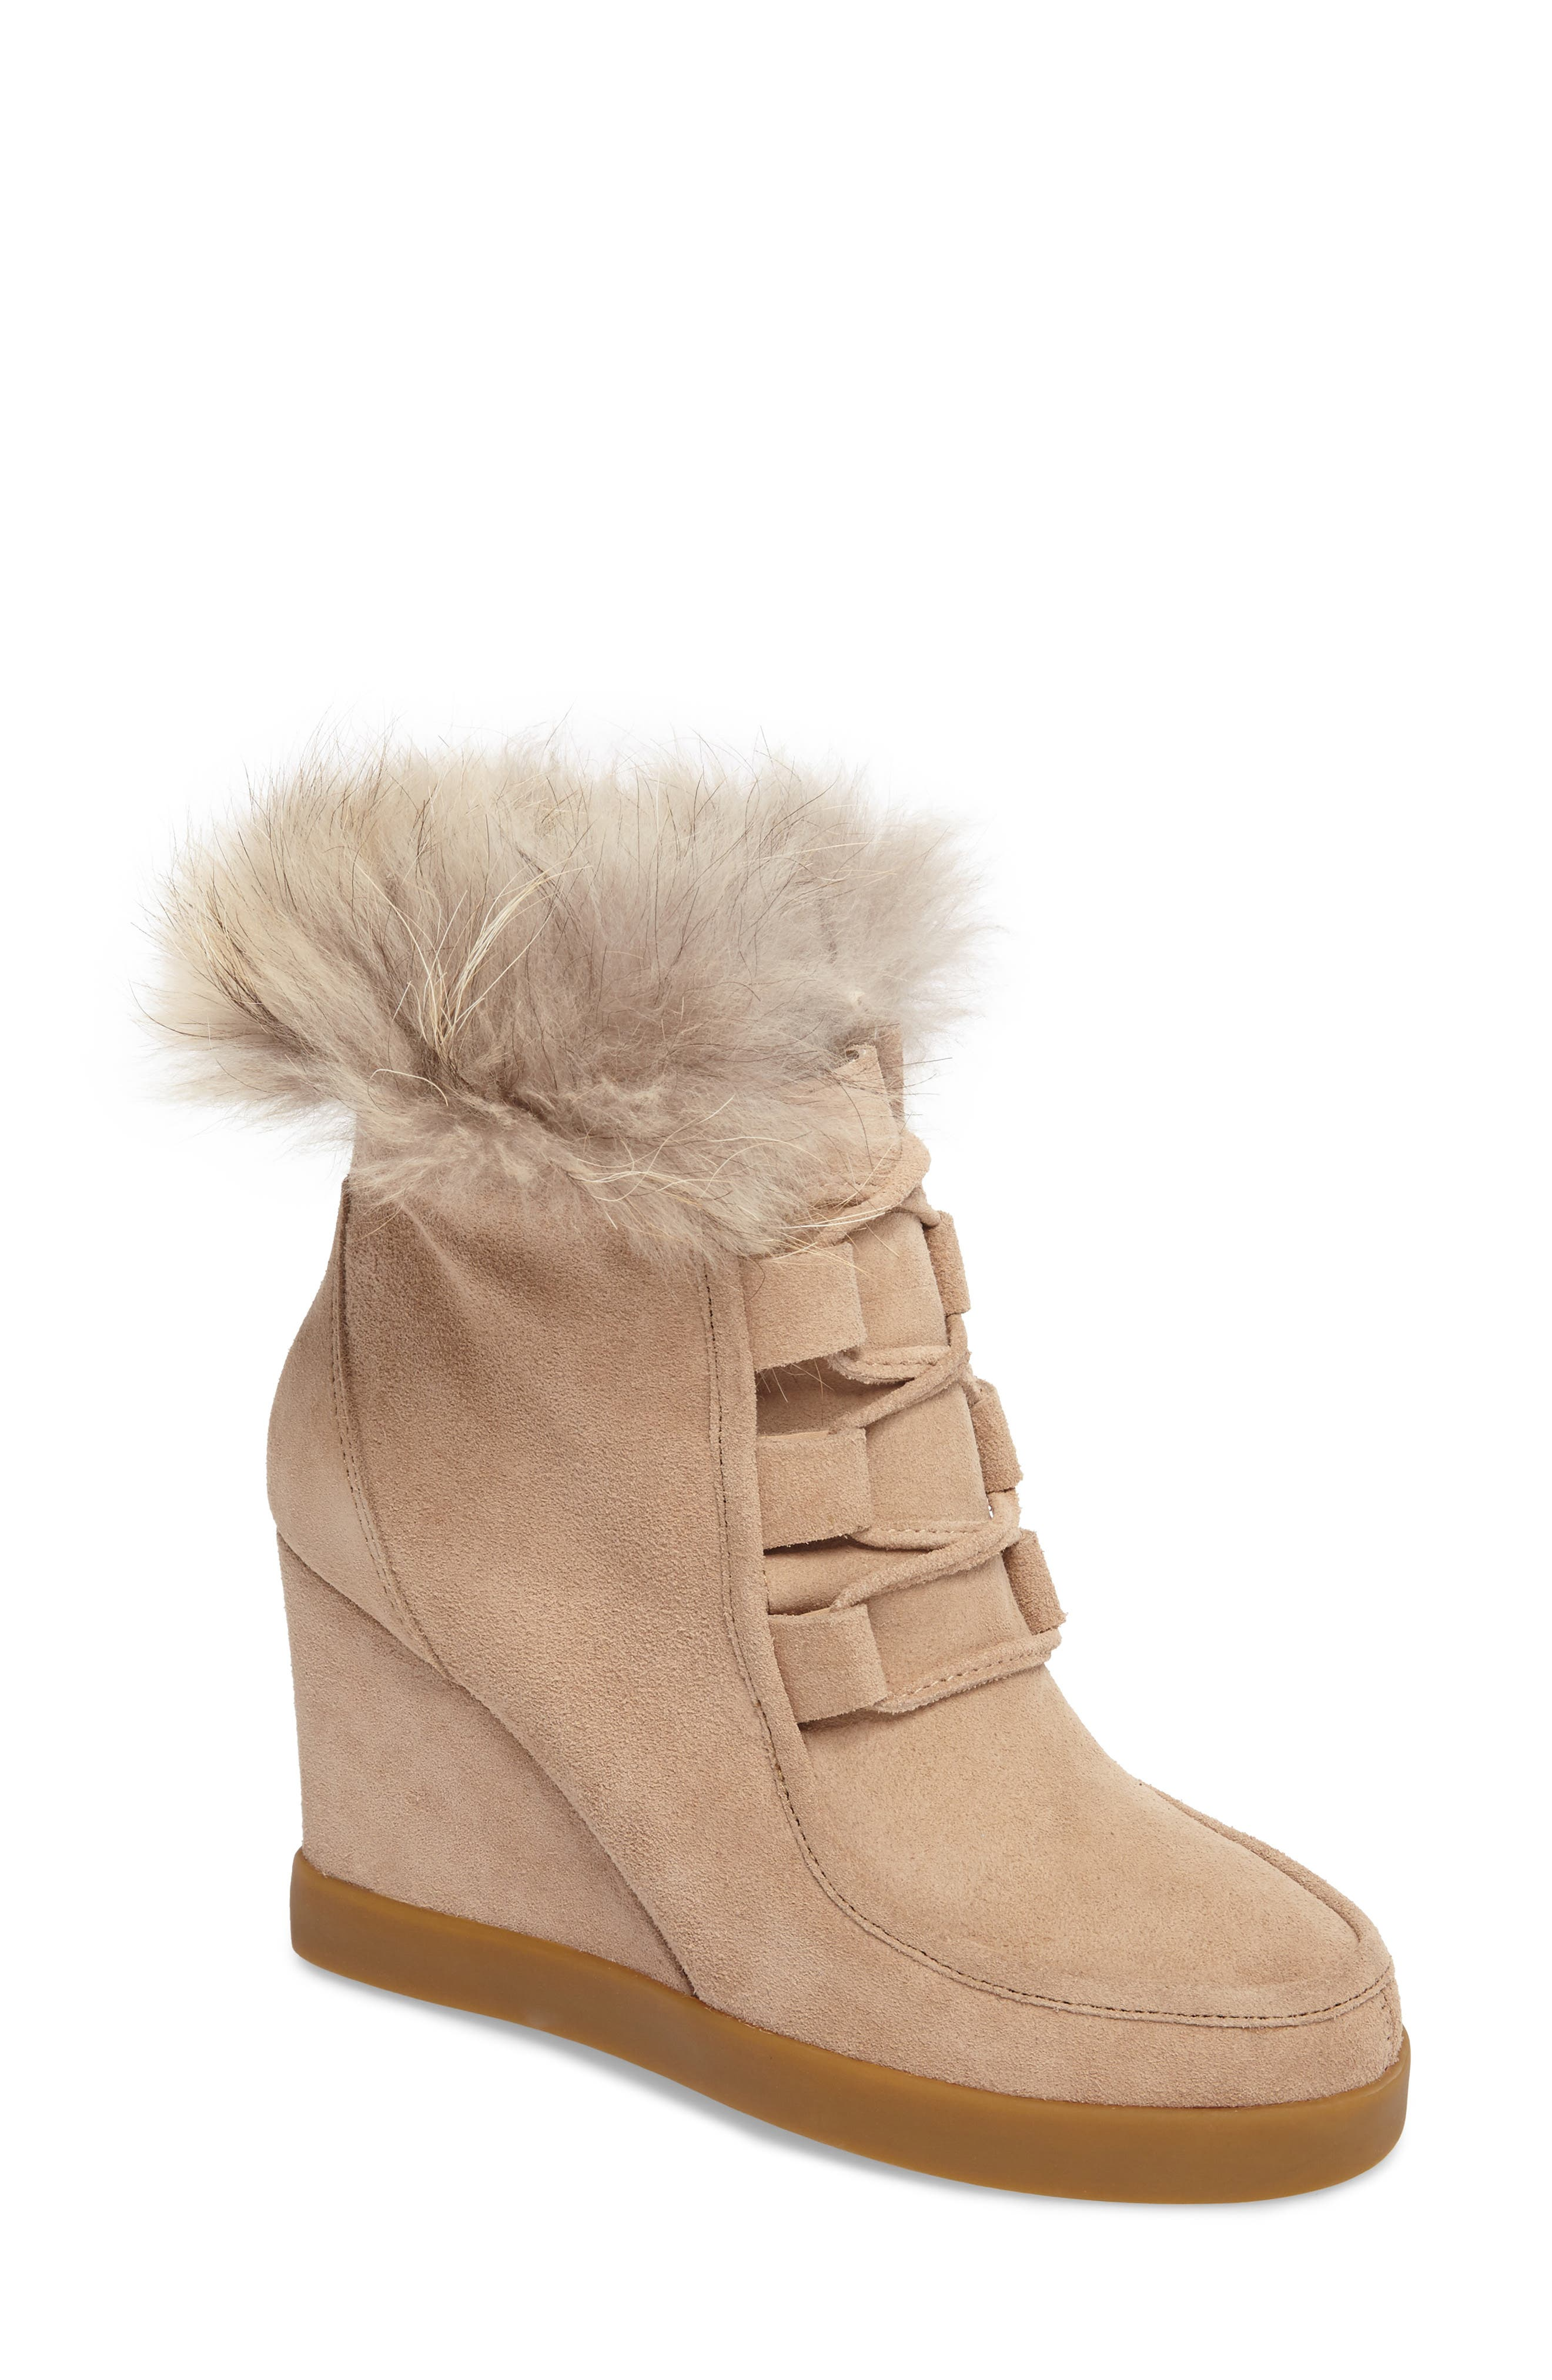 Holly Wedge Bootie with Genuine Fox Fur Trim,                         Main,                         color, Natural Suede